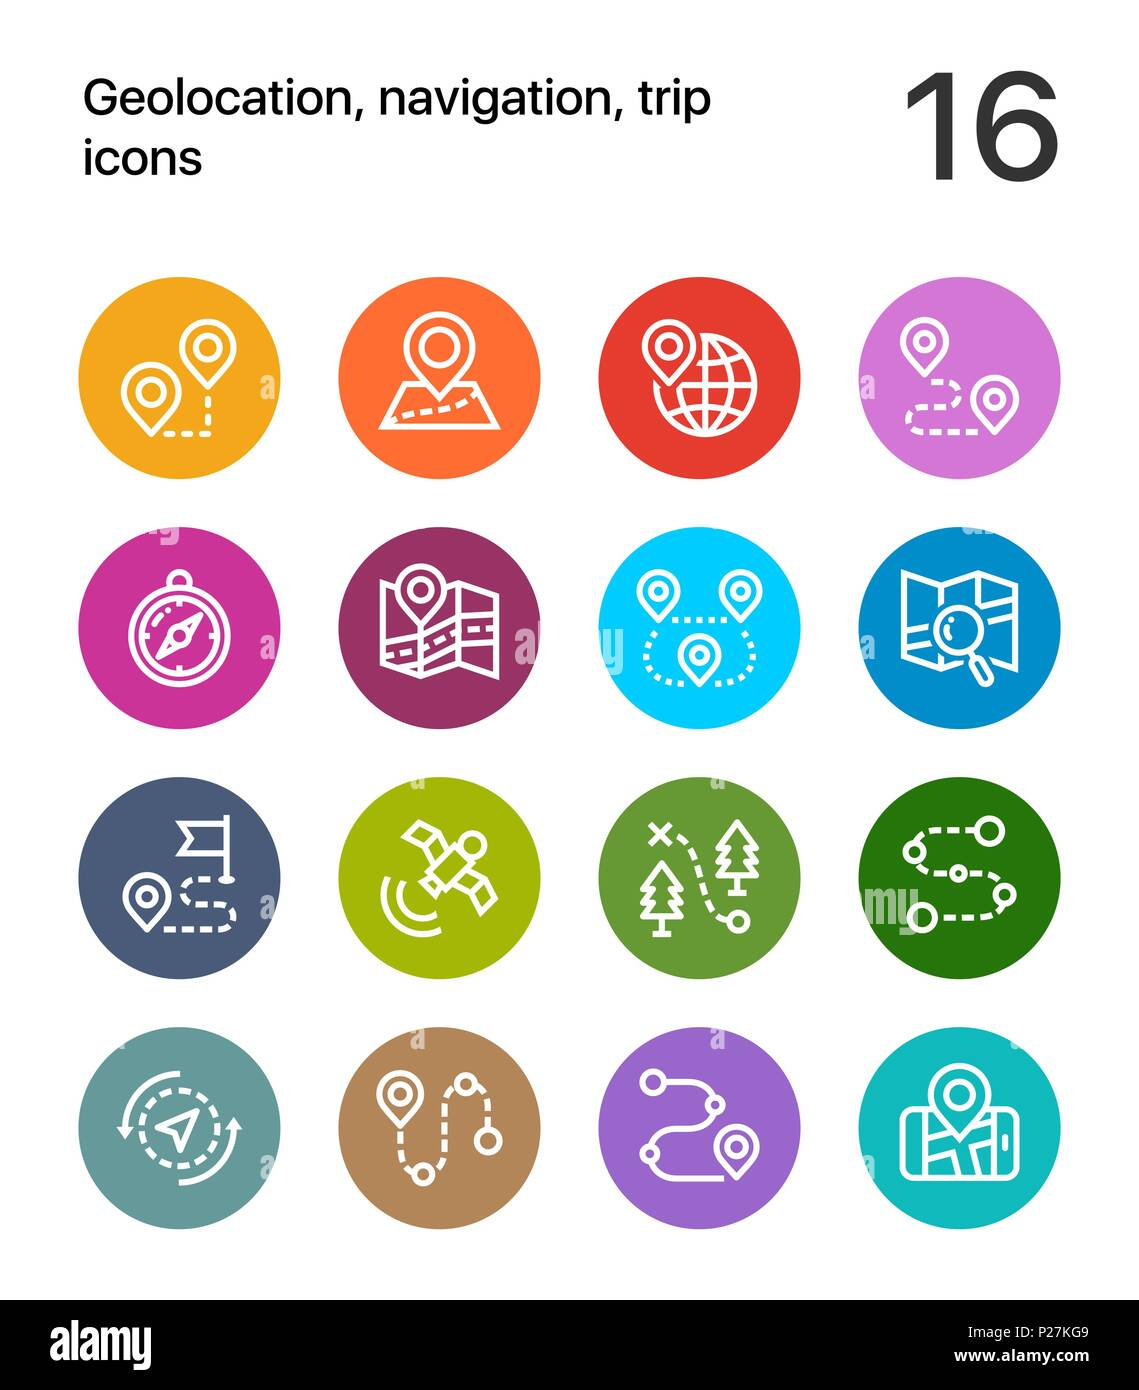 Colorful Geolocation, navigation, trip icons for web and mobile design pack 1 - Stock Vector